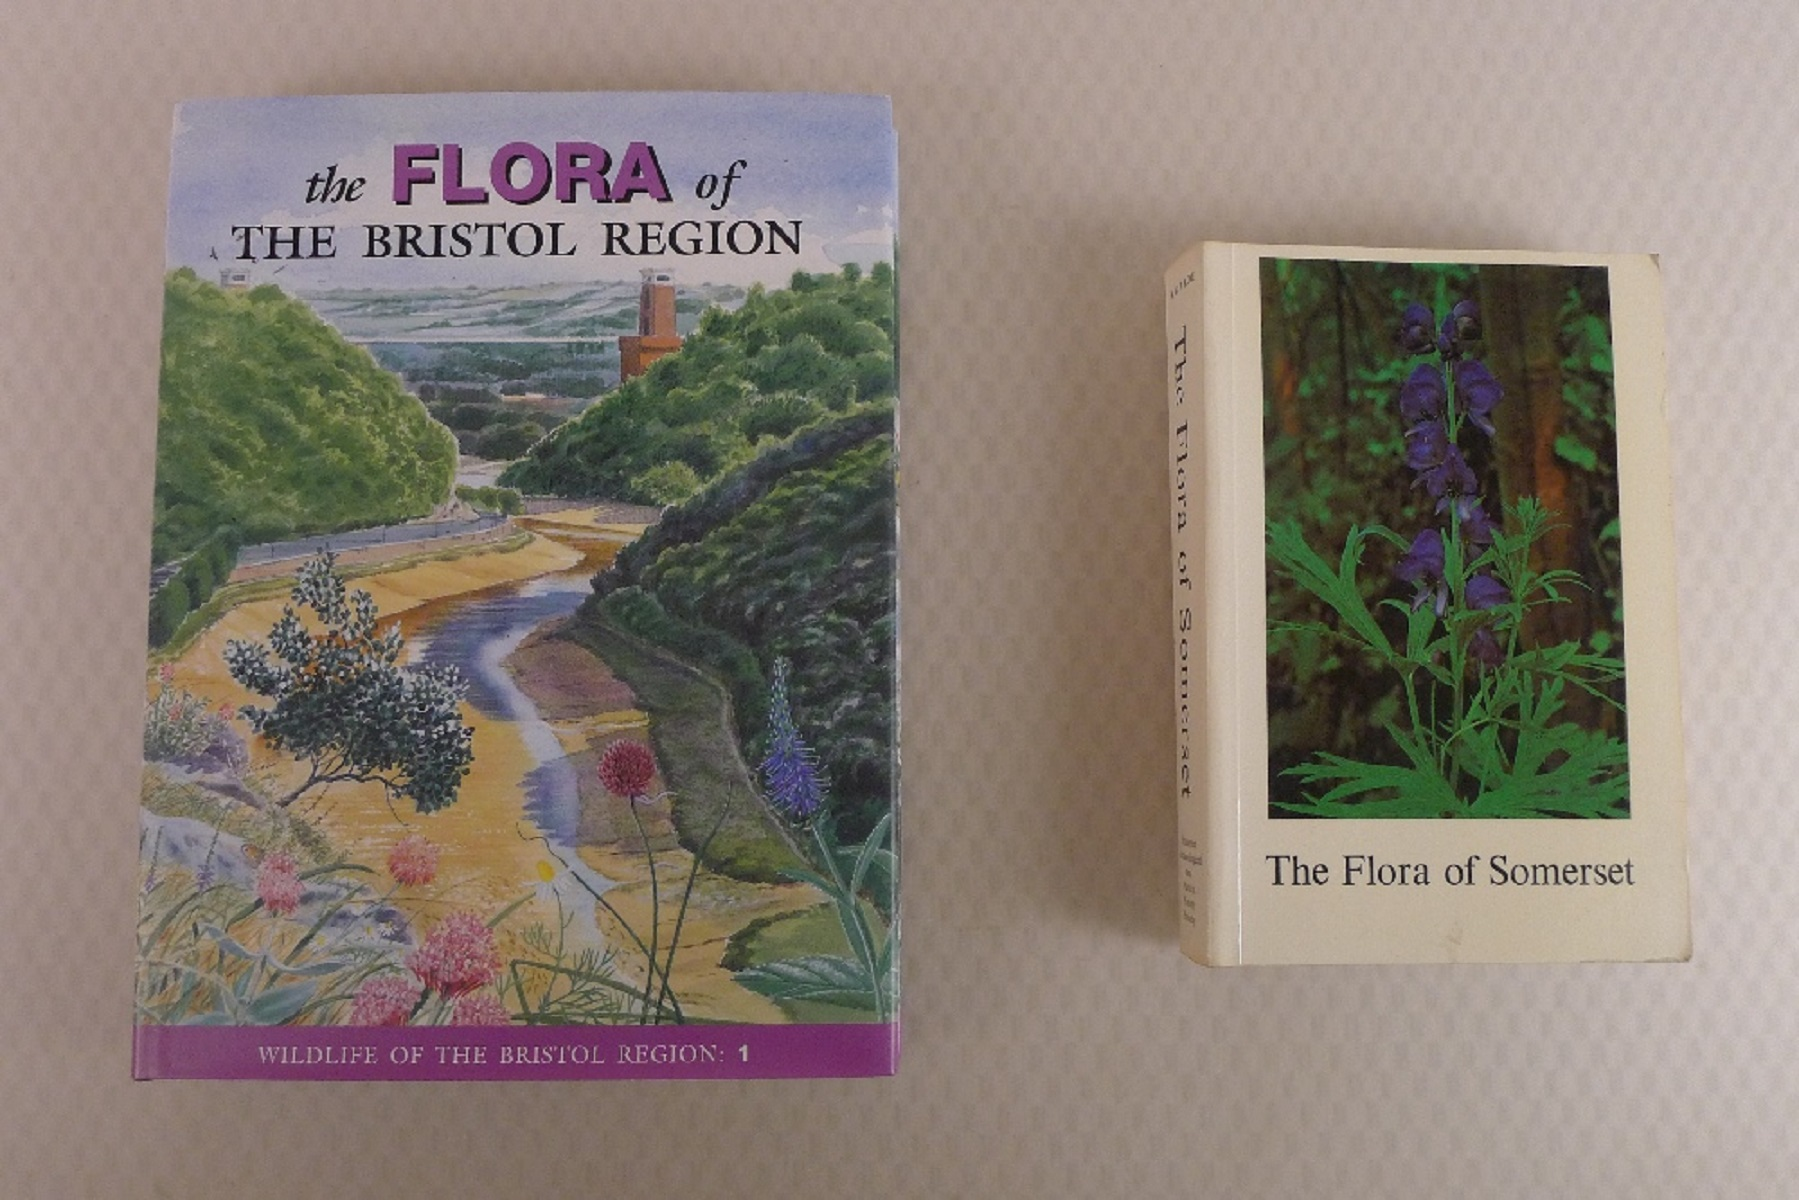 2 Books The Flora of The Bristol Region by Ian Green, Rupert Higgins, Clare Kitchen and Mark Kitchen